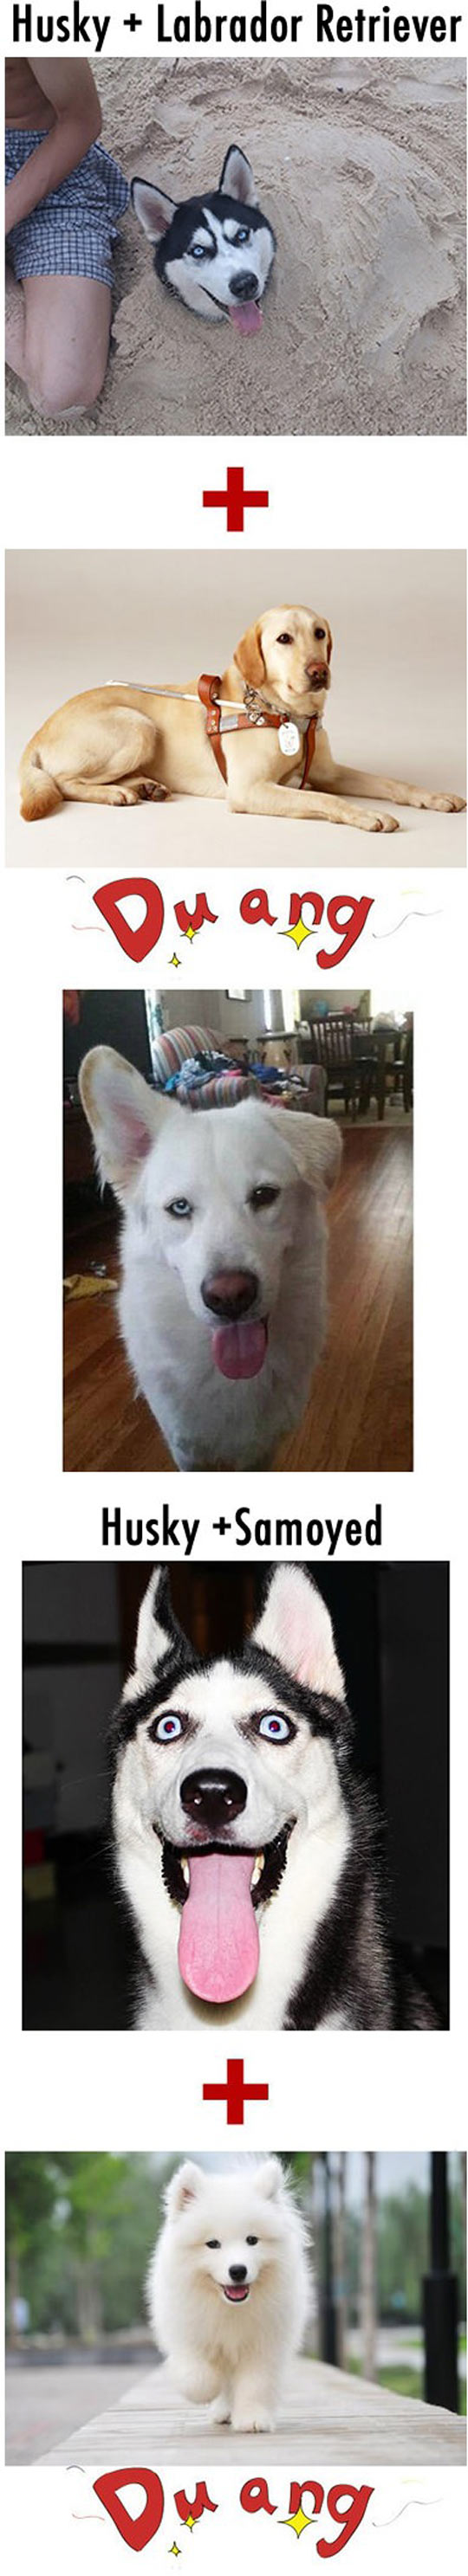 Husky Hybrids Are Beautiful